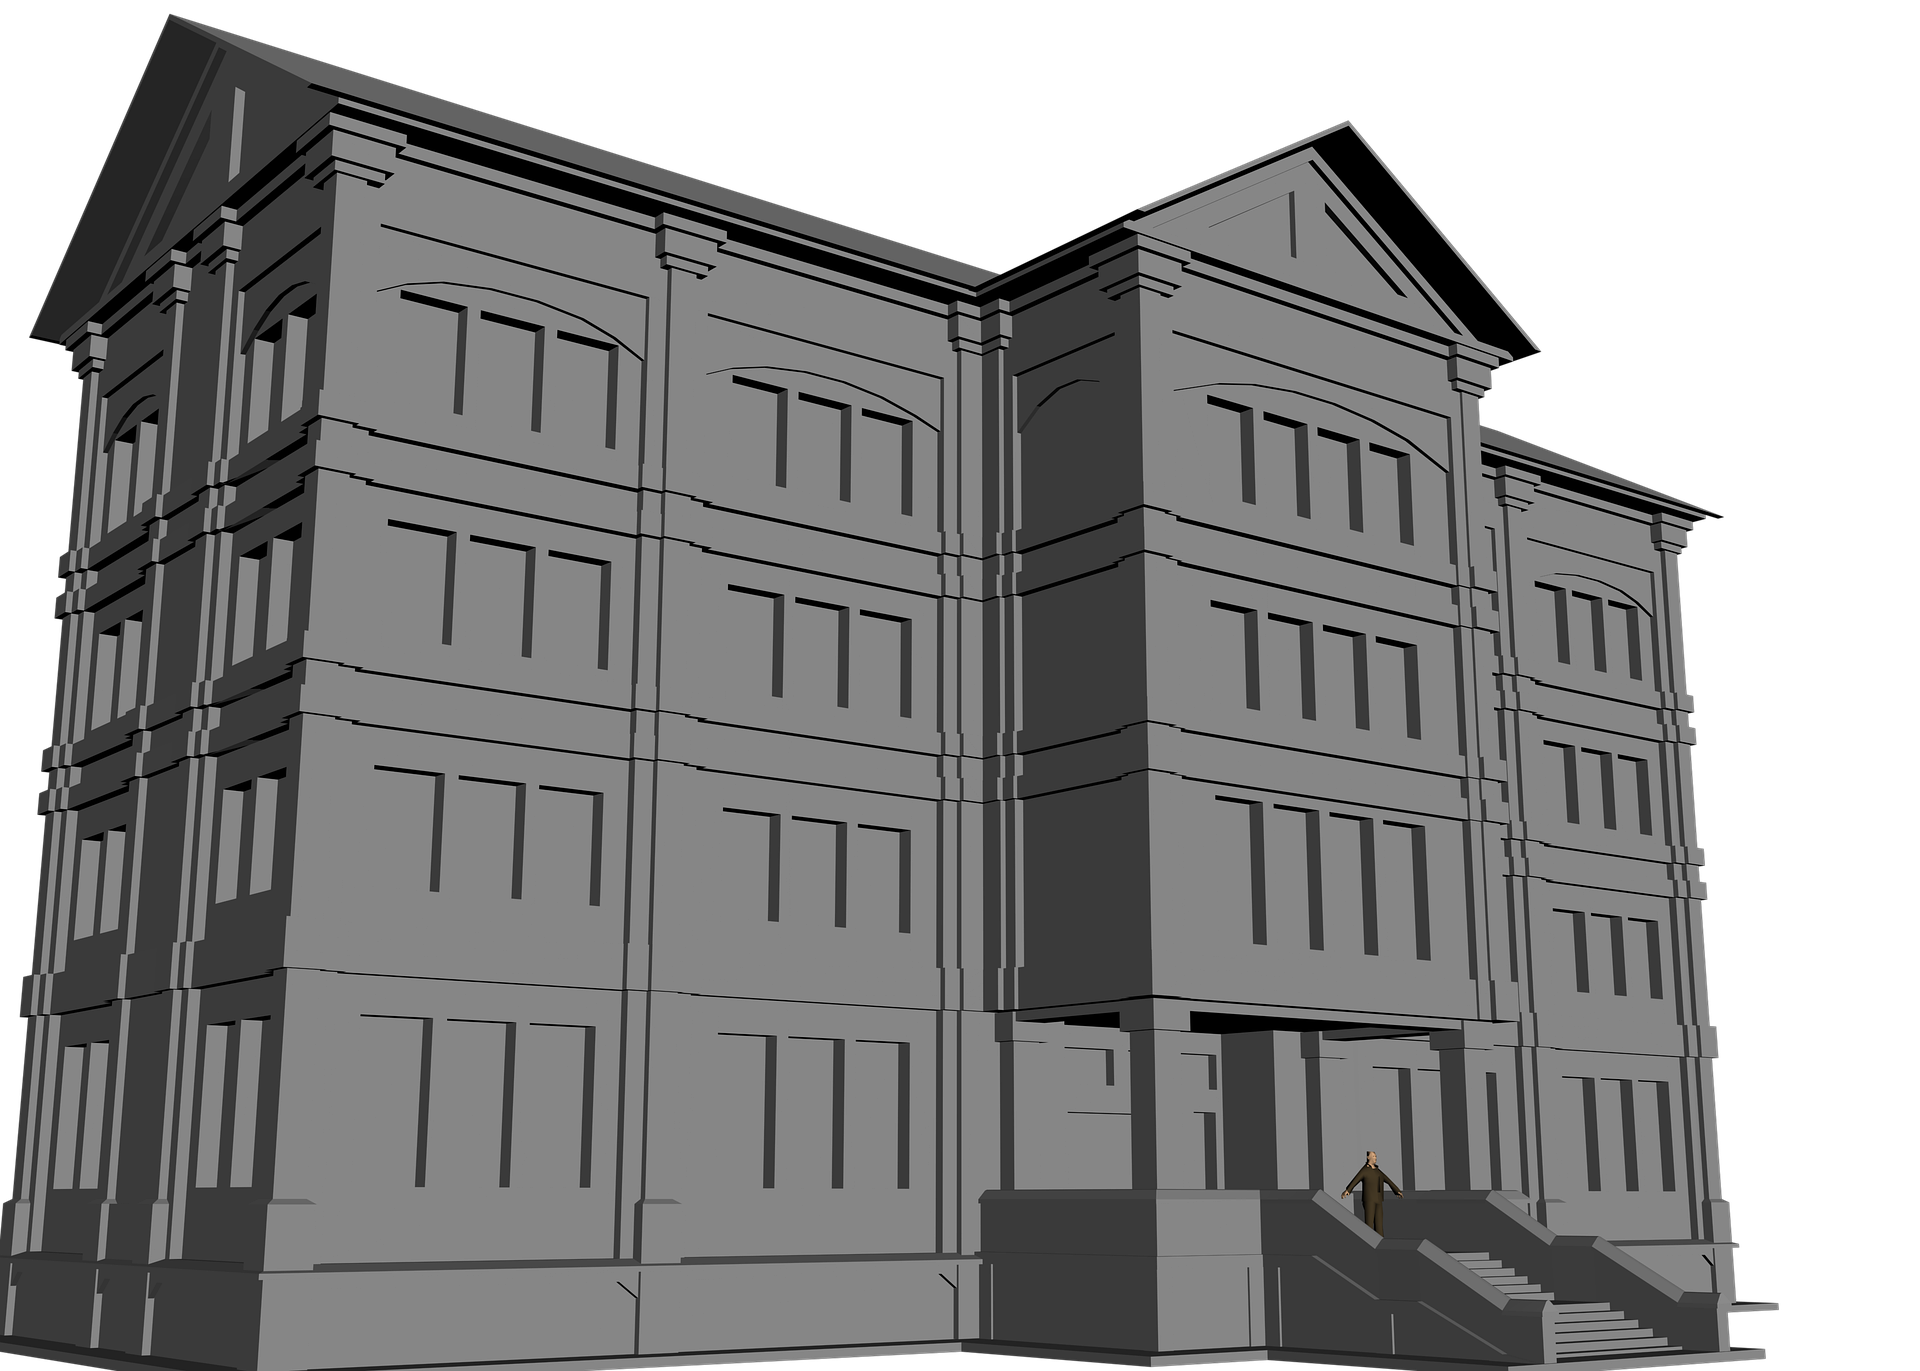 AutoCAD Drafting Services | CAD Drafting | AutoCAD Drafting India on autocad architecture, autocad roof drawings, construction drawings floor plan, autocad projects, sketchup floor plan, luxury hotel lobby floor plan, autocad blueprints, autocad floor plans with dimensions, autocad interior design, pool table autocad floor plan, autocad 3d house plan, commercial space floor plan, cad furniture blocks plan, autocad 2d floor plan, autocad home, autocad floor plan symbols, autocad floor plan windows, autocad floor plan templates, autocad practice drawings, autocad raster design,